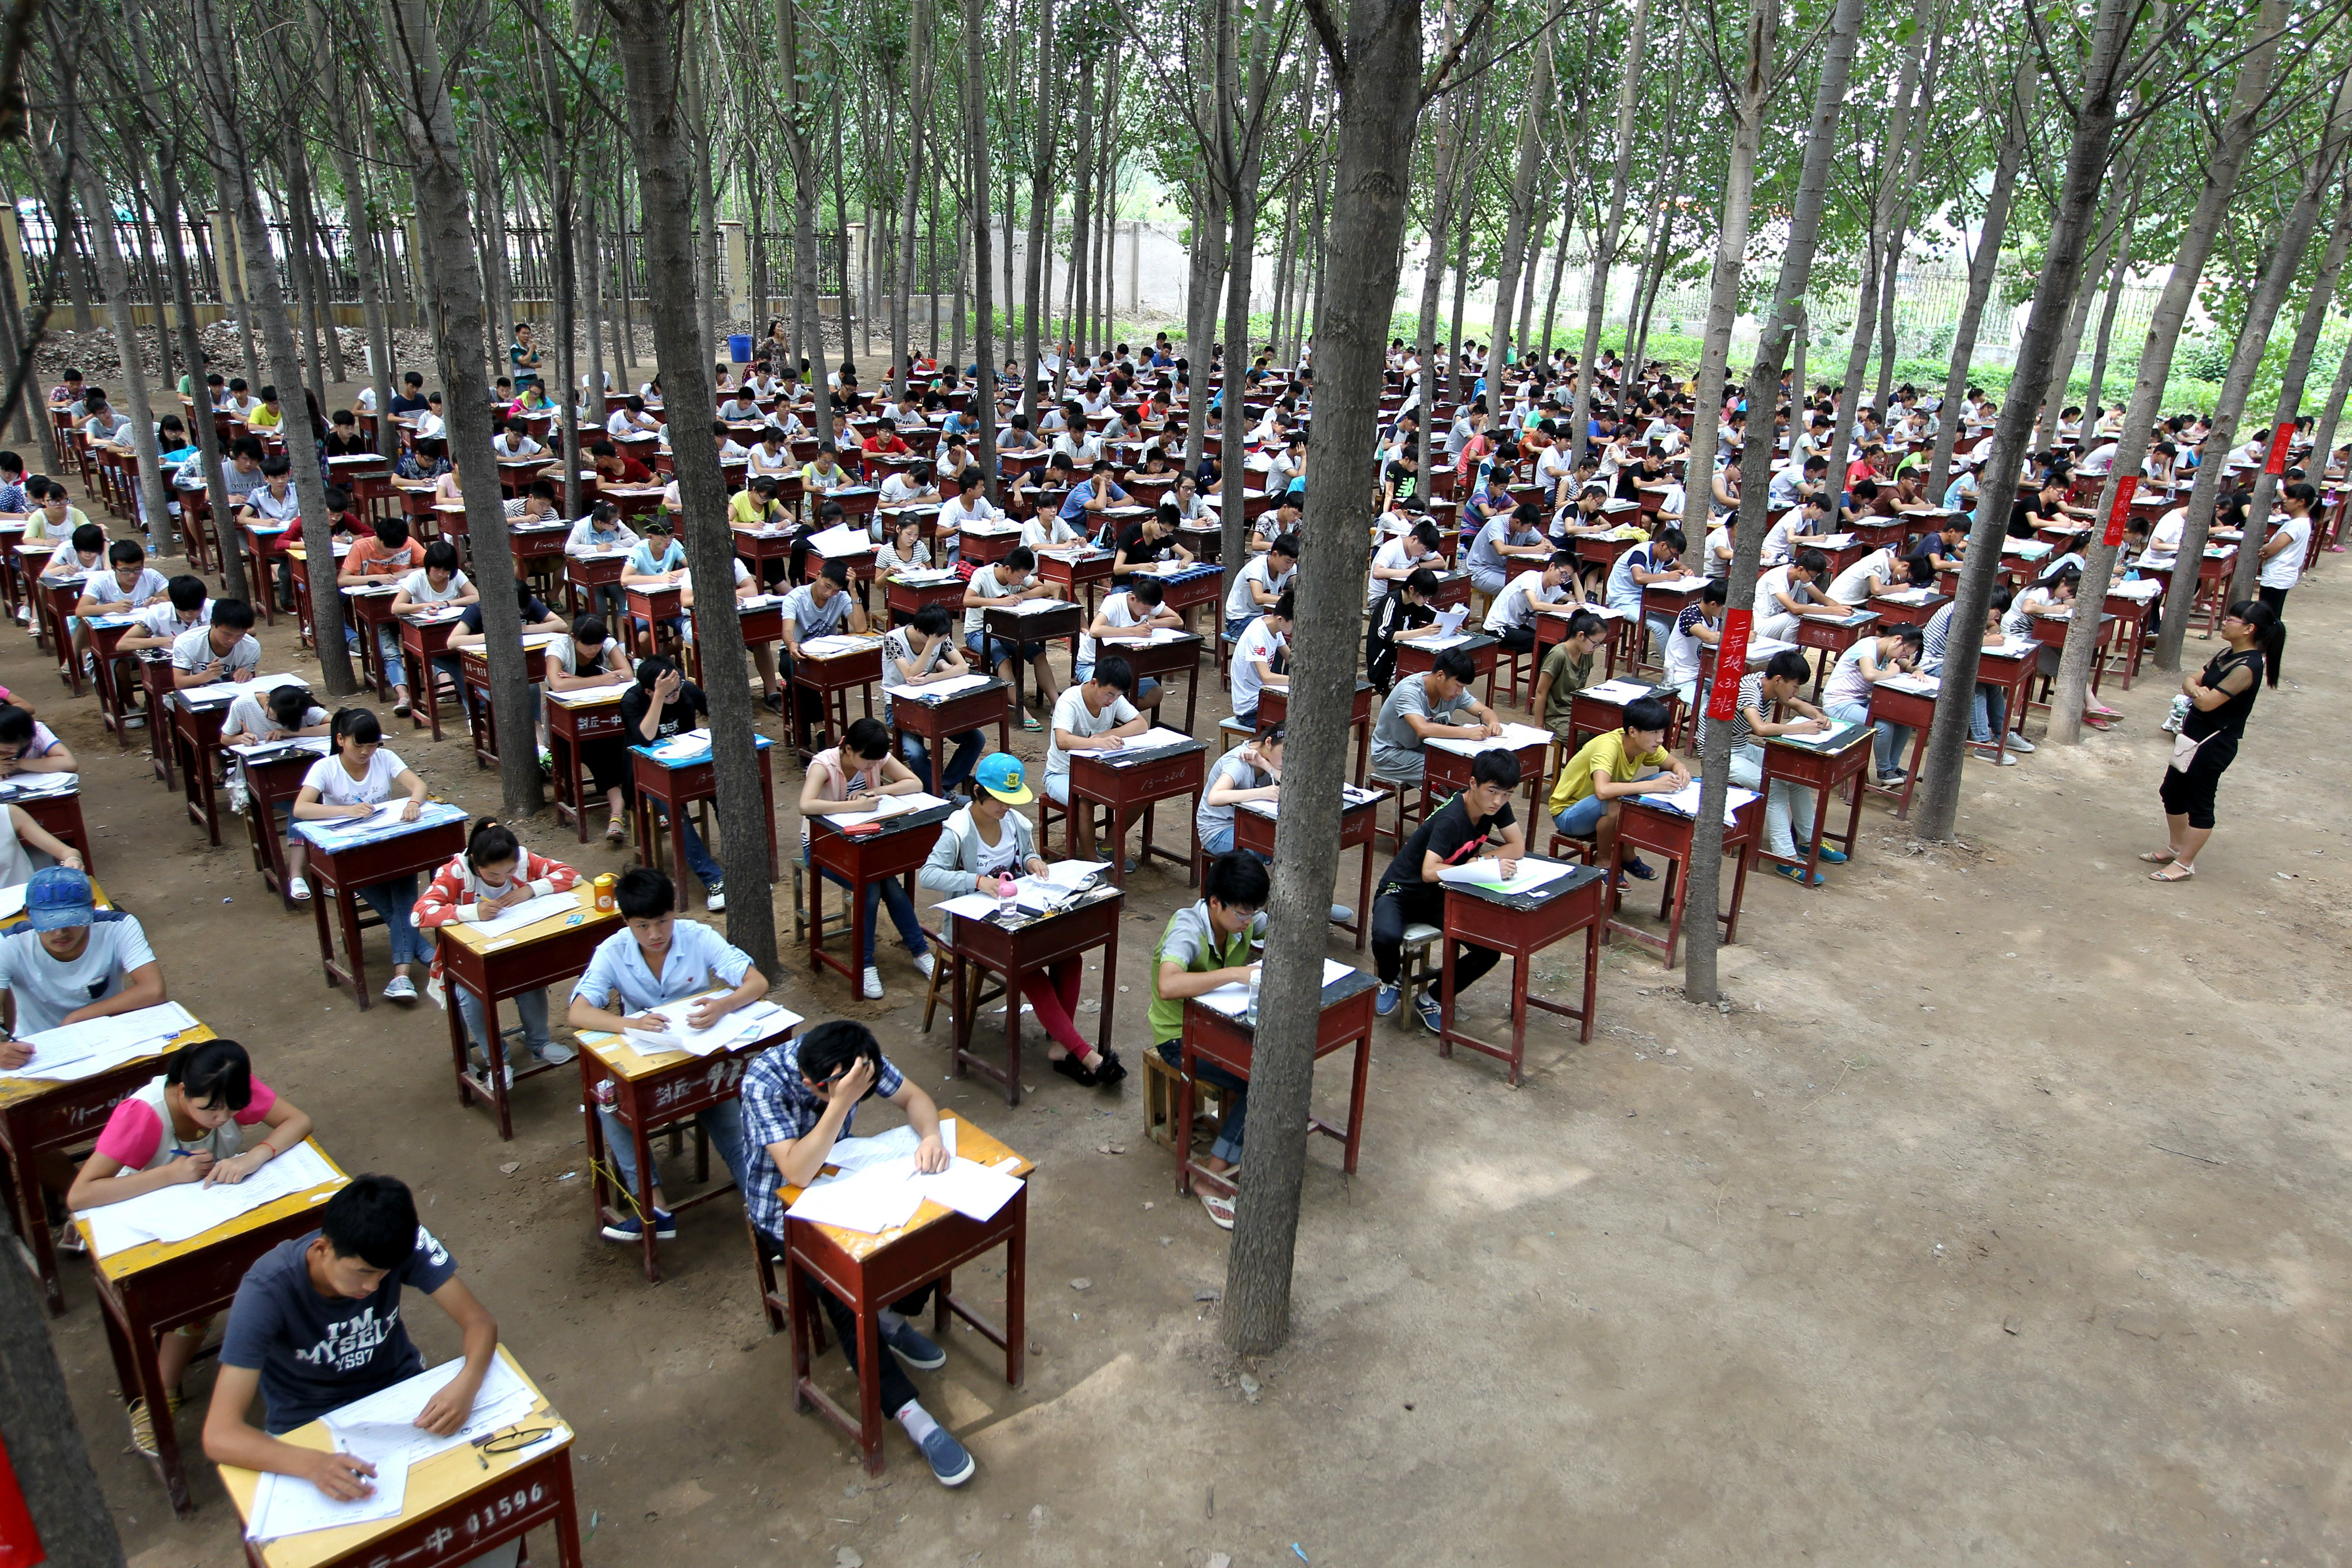 What Are School Programs Like In China